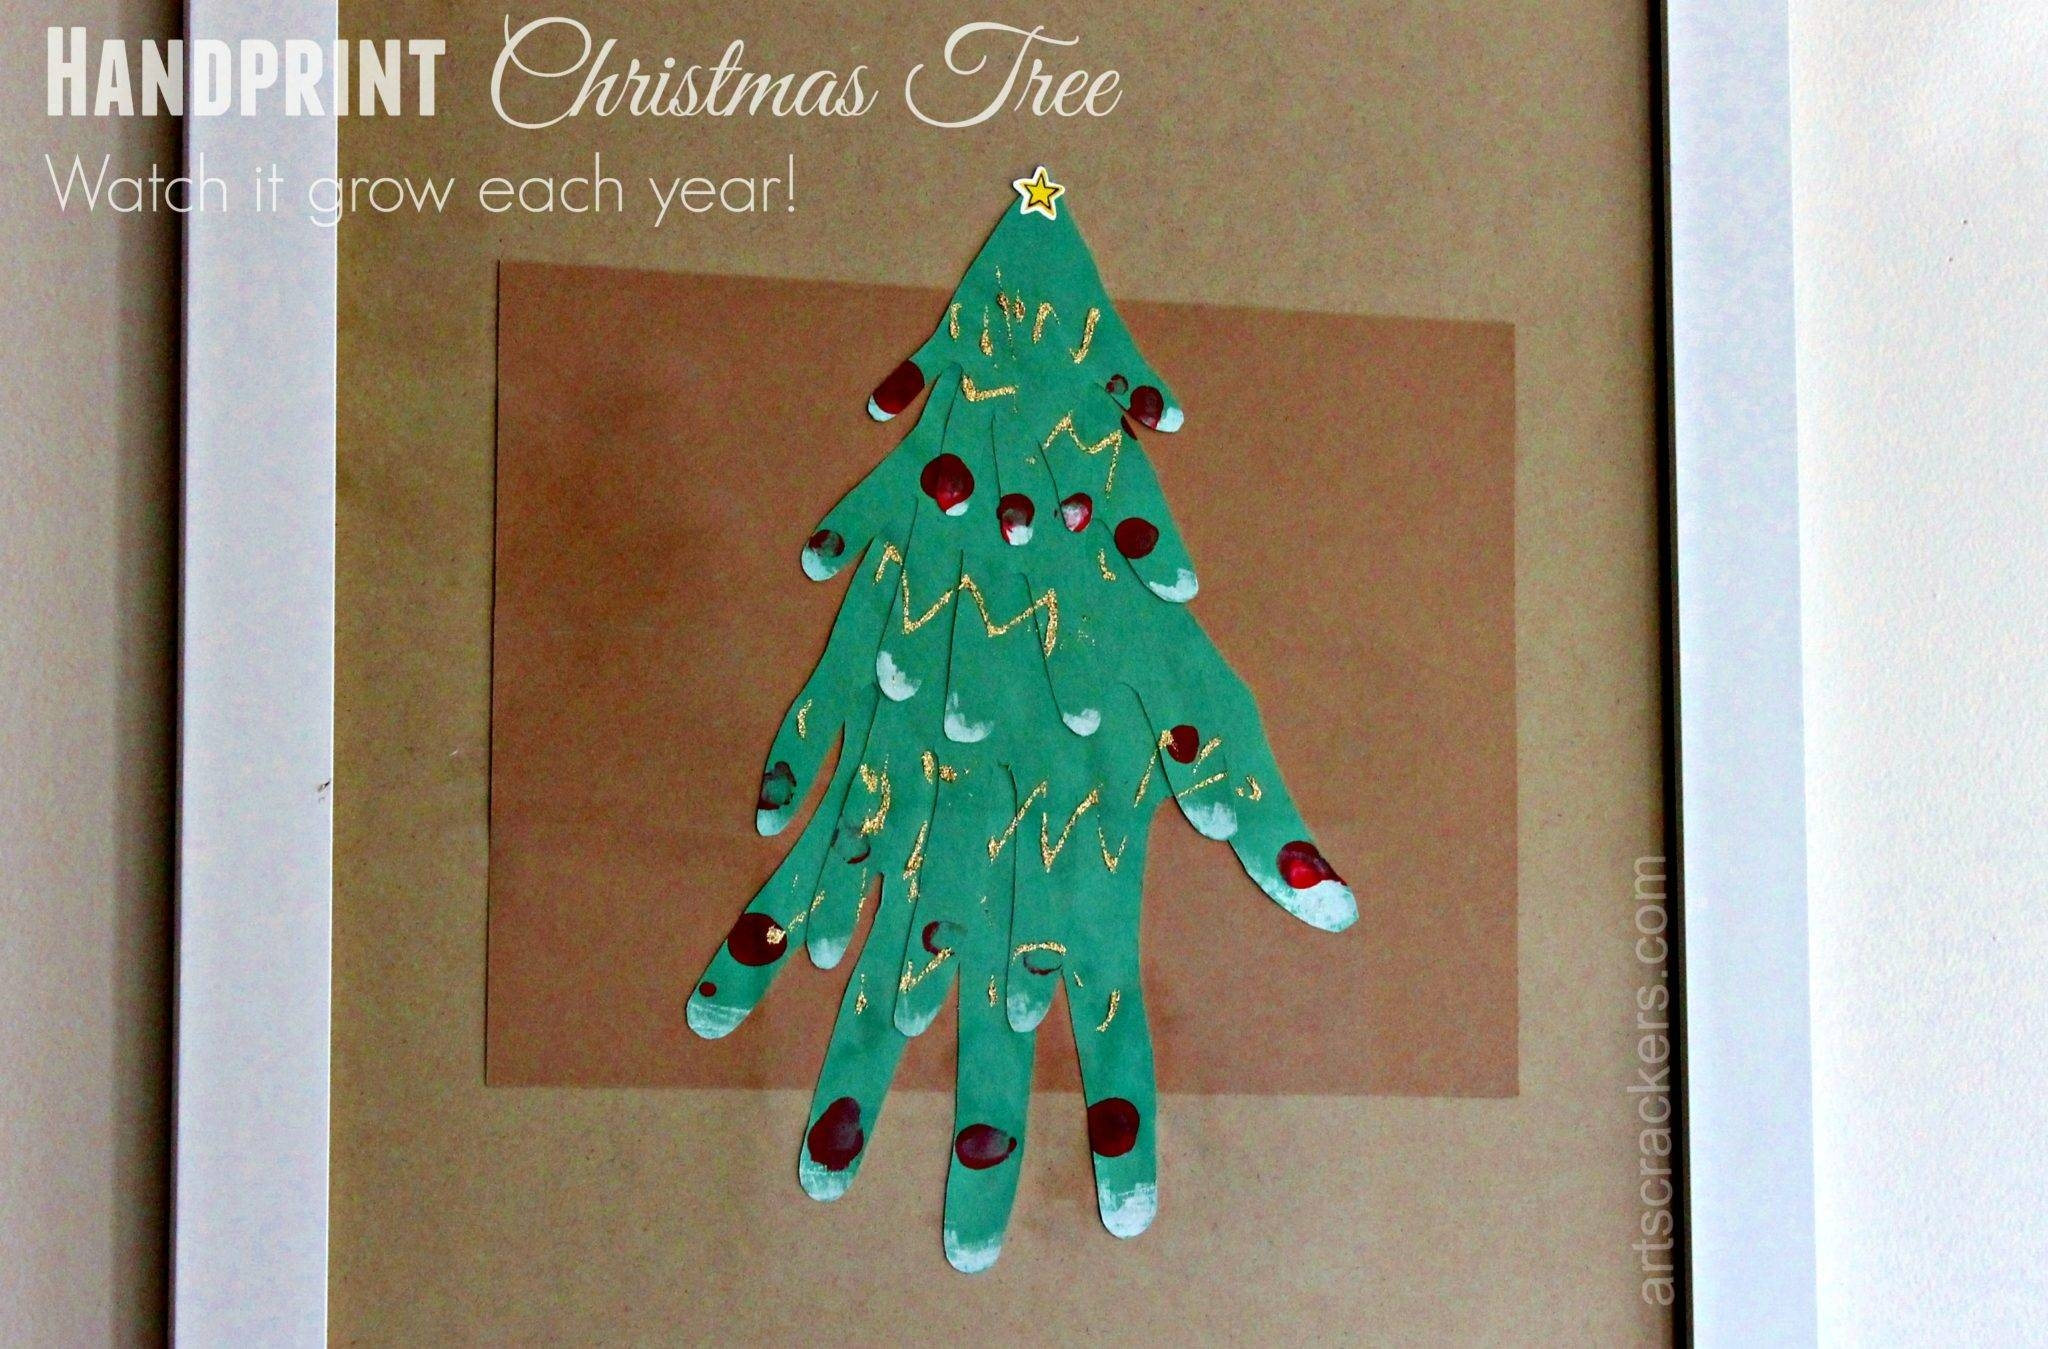 Handprint Christmas Tree Framed Wall Art Inside Latest Pine Tree Wall Art (View 7 of 30)